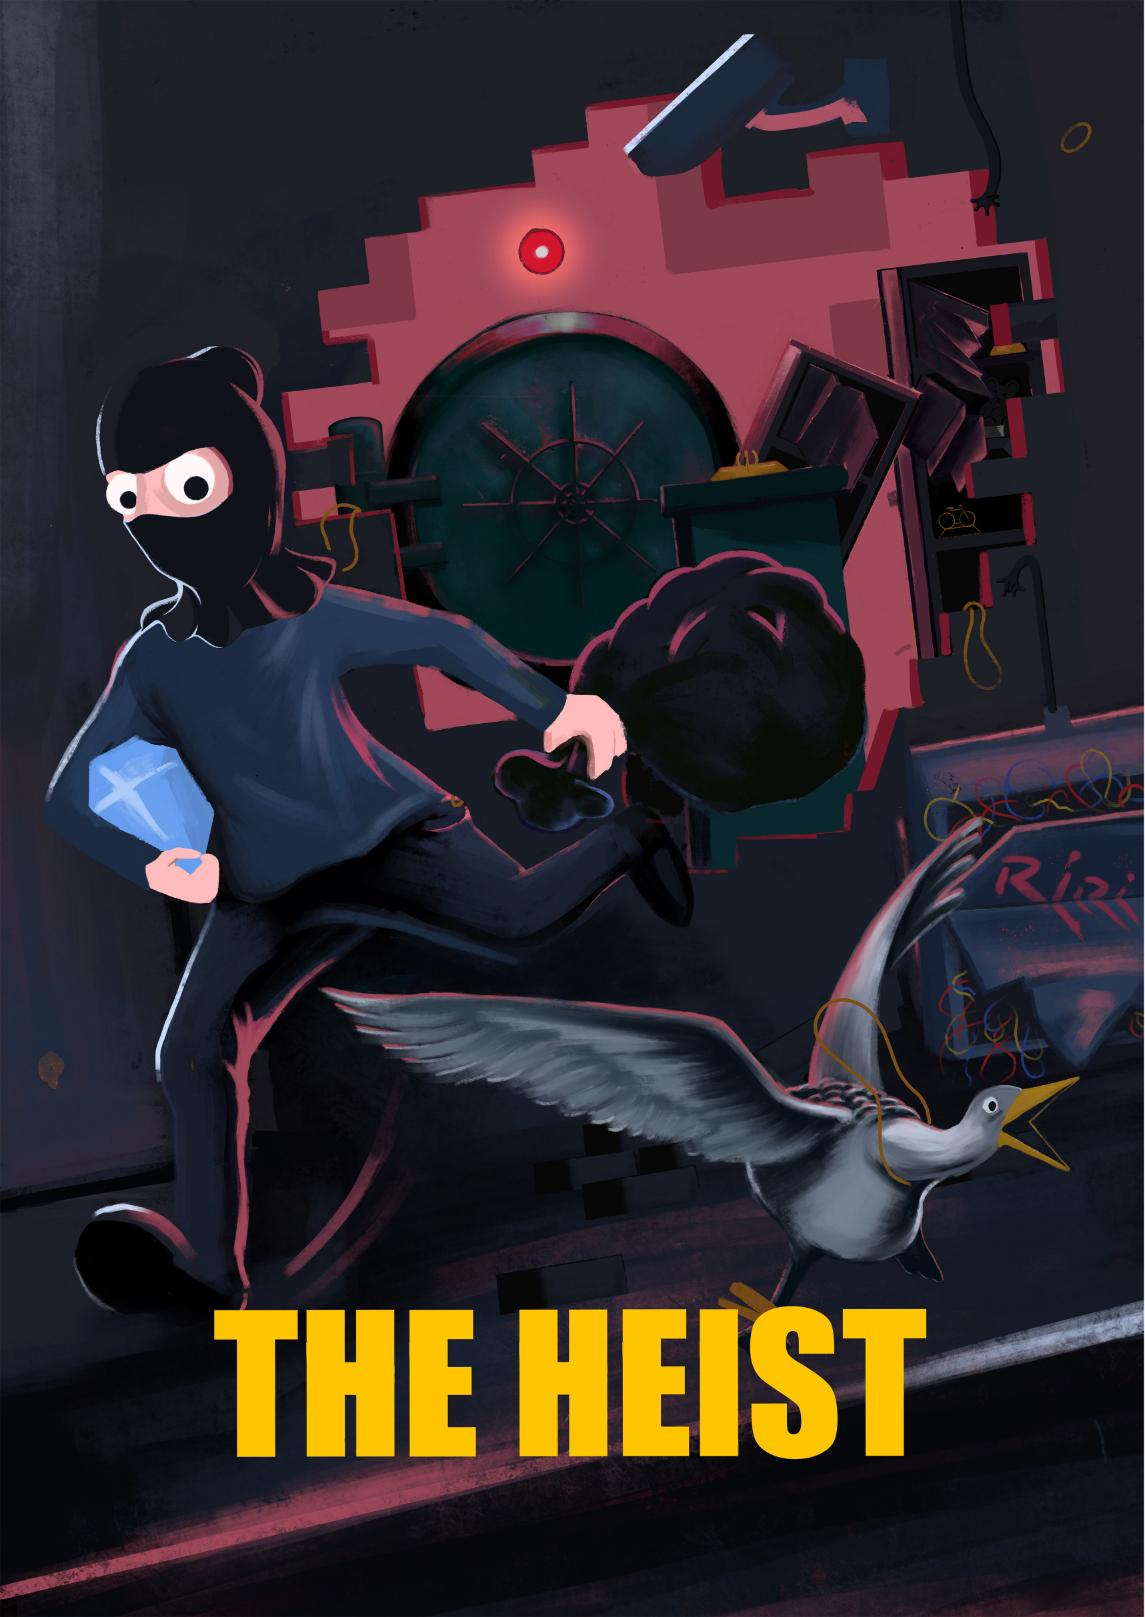 The Heist Escape Room Poster